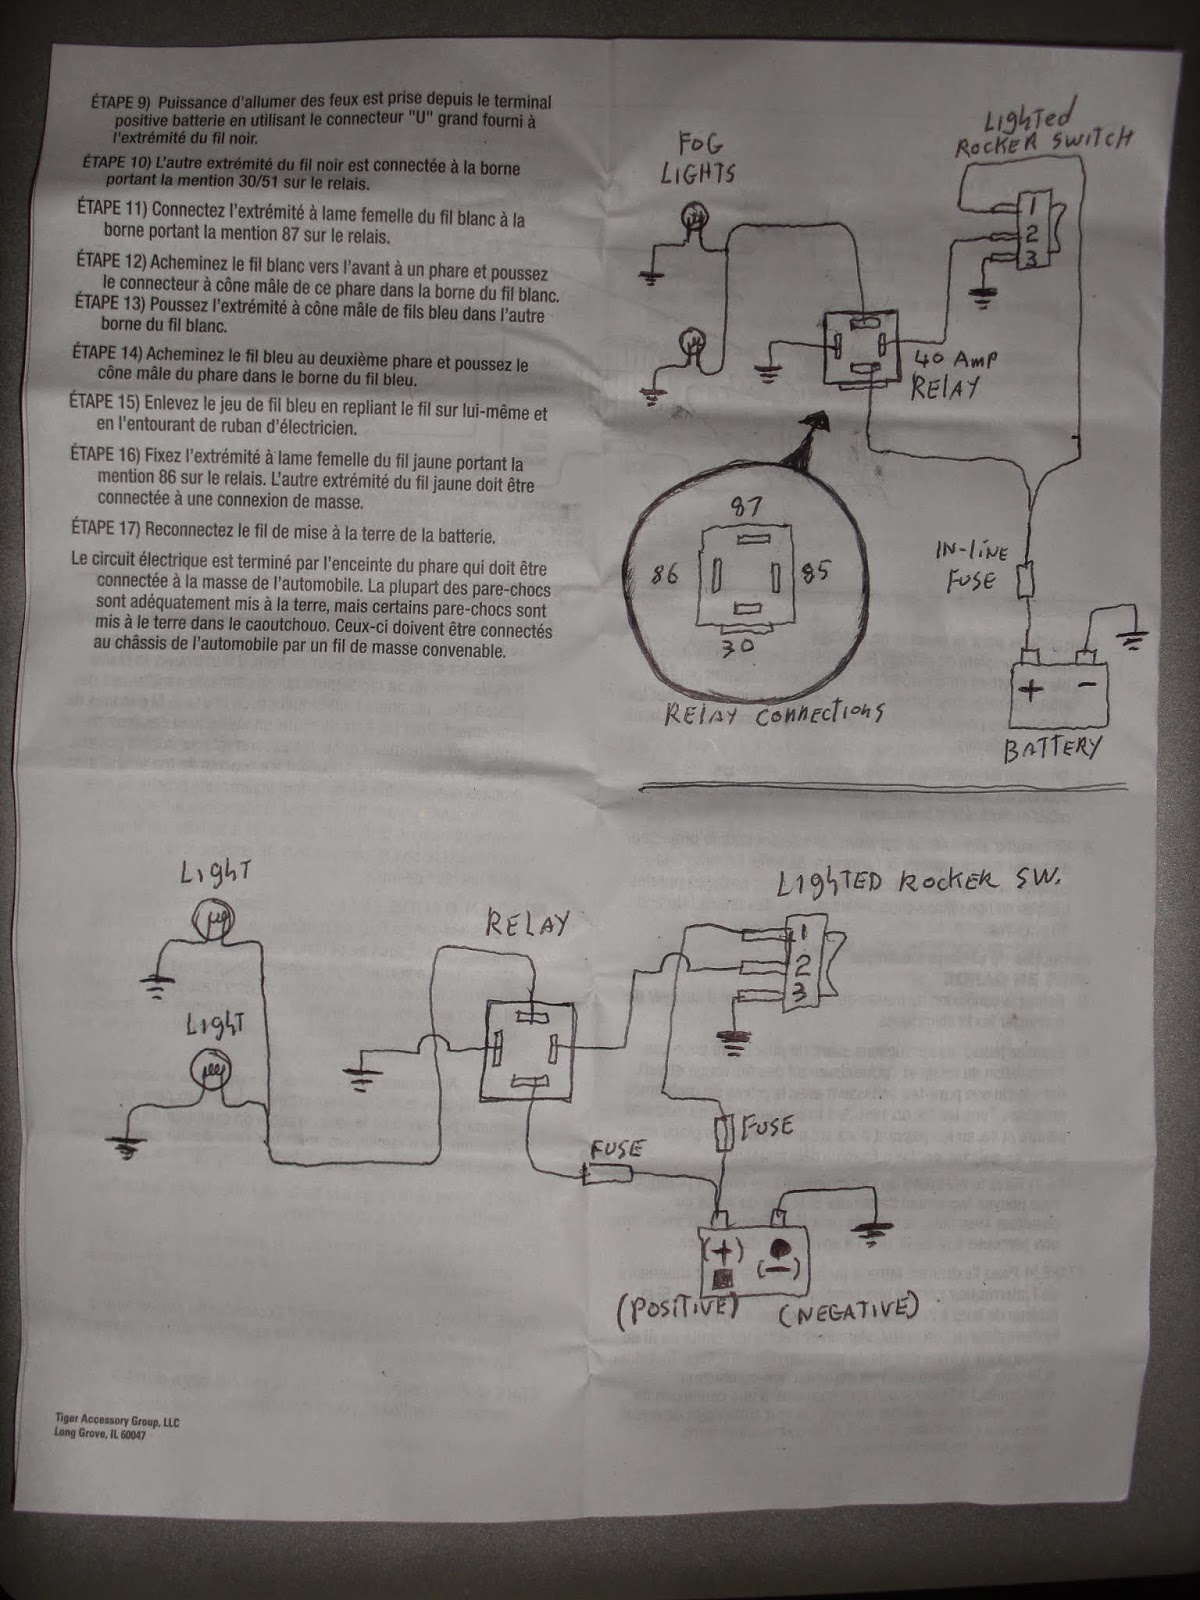 My Knight Rider 2000 Project Diagrams And Schematics Saab 9 3 Fog Lights Wiring Diagram You Do Otherwise Will Just Keep Blowing Switches Or It Wont Work I Found Out The Hard Way Not Being Familiar With Automotive